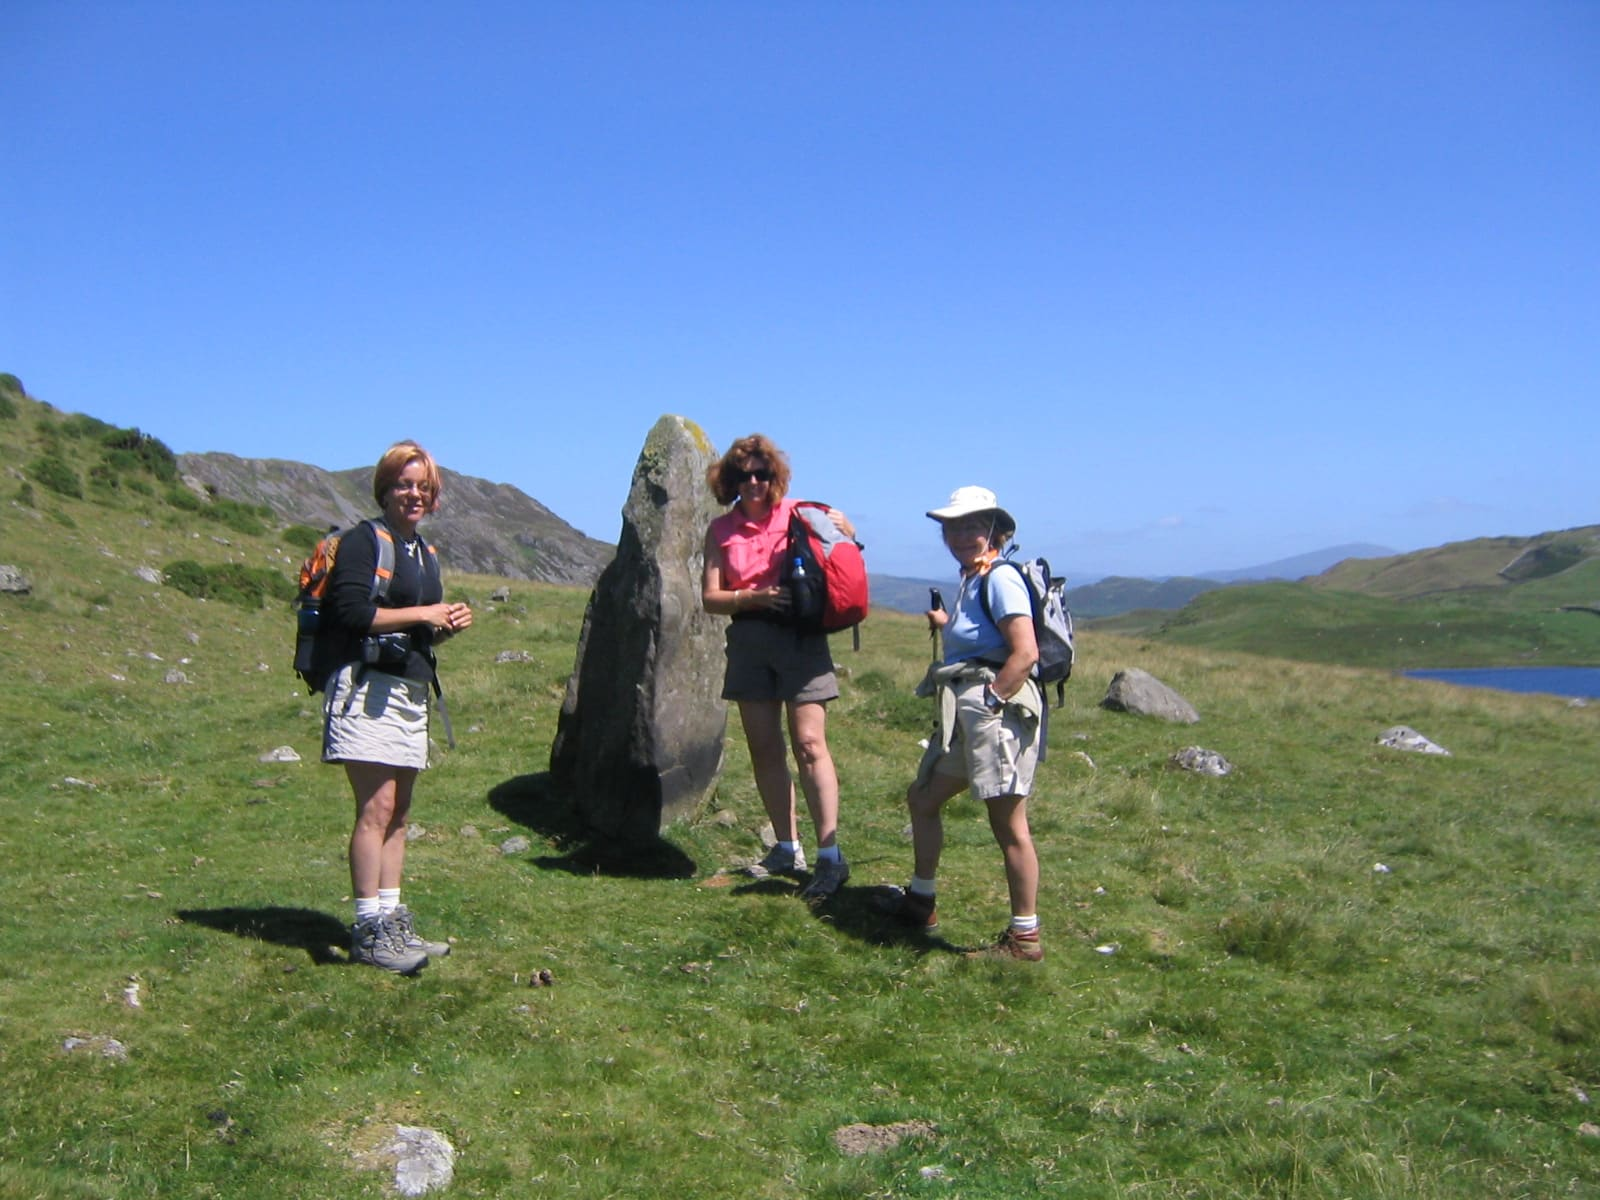 Image of walkers and standing stone in Wales, July